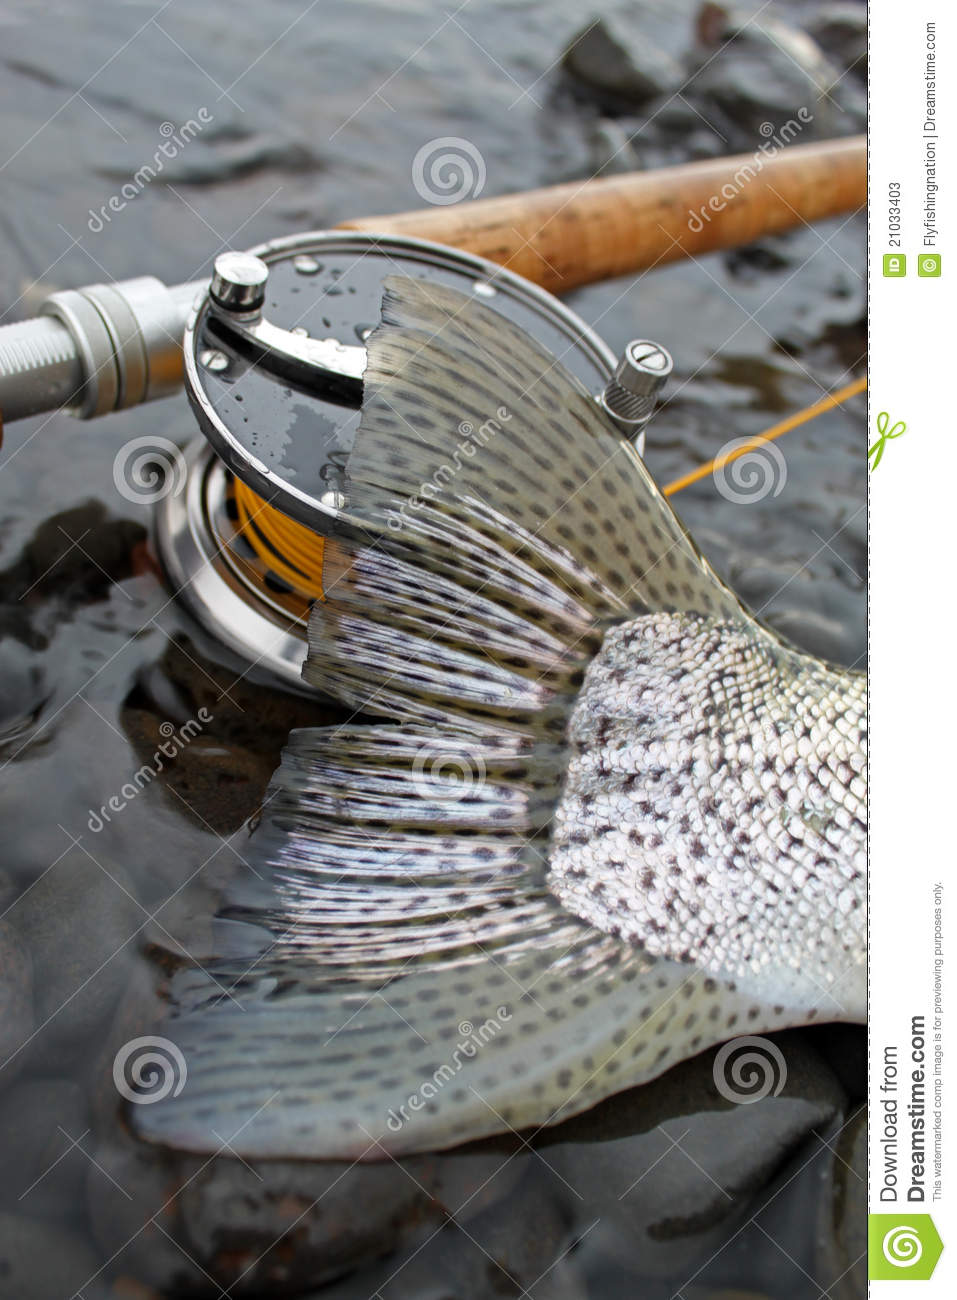 steelhead trout tail fly fishing stock photos - image: 21033403, Fly Fishing Bait